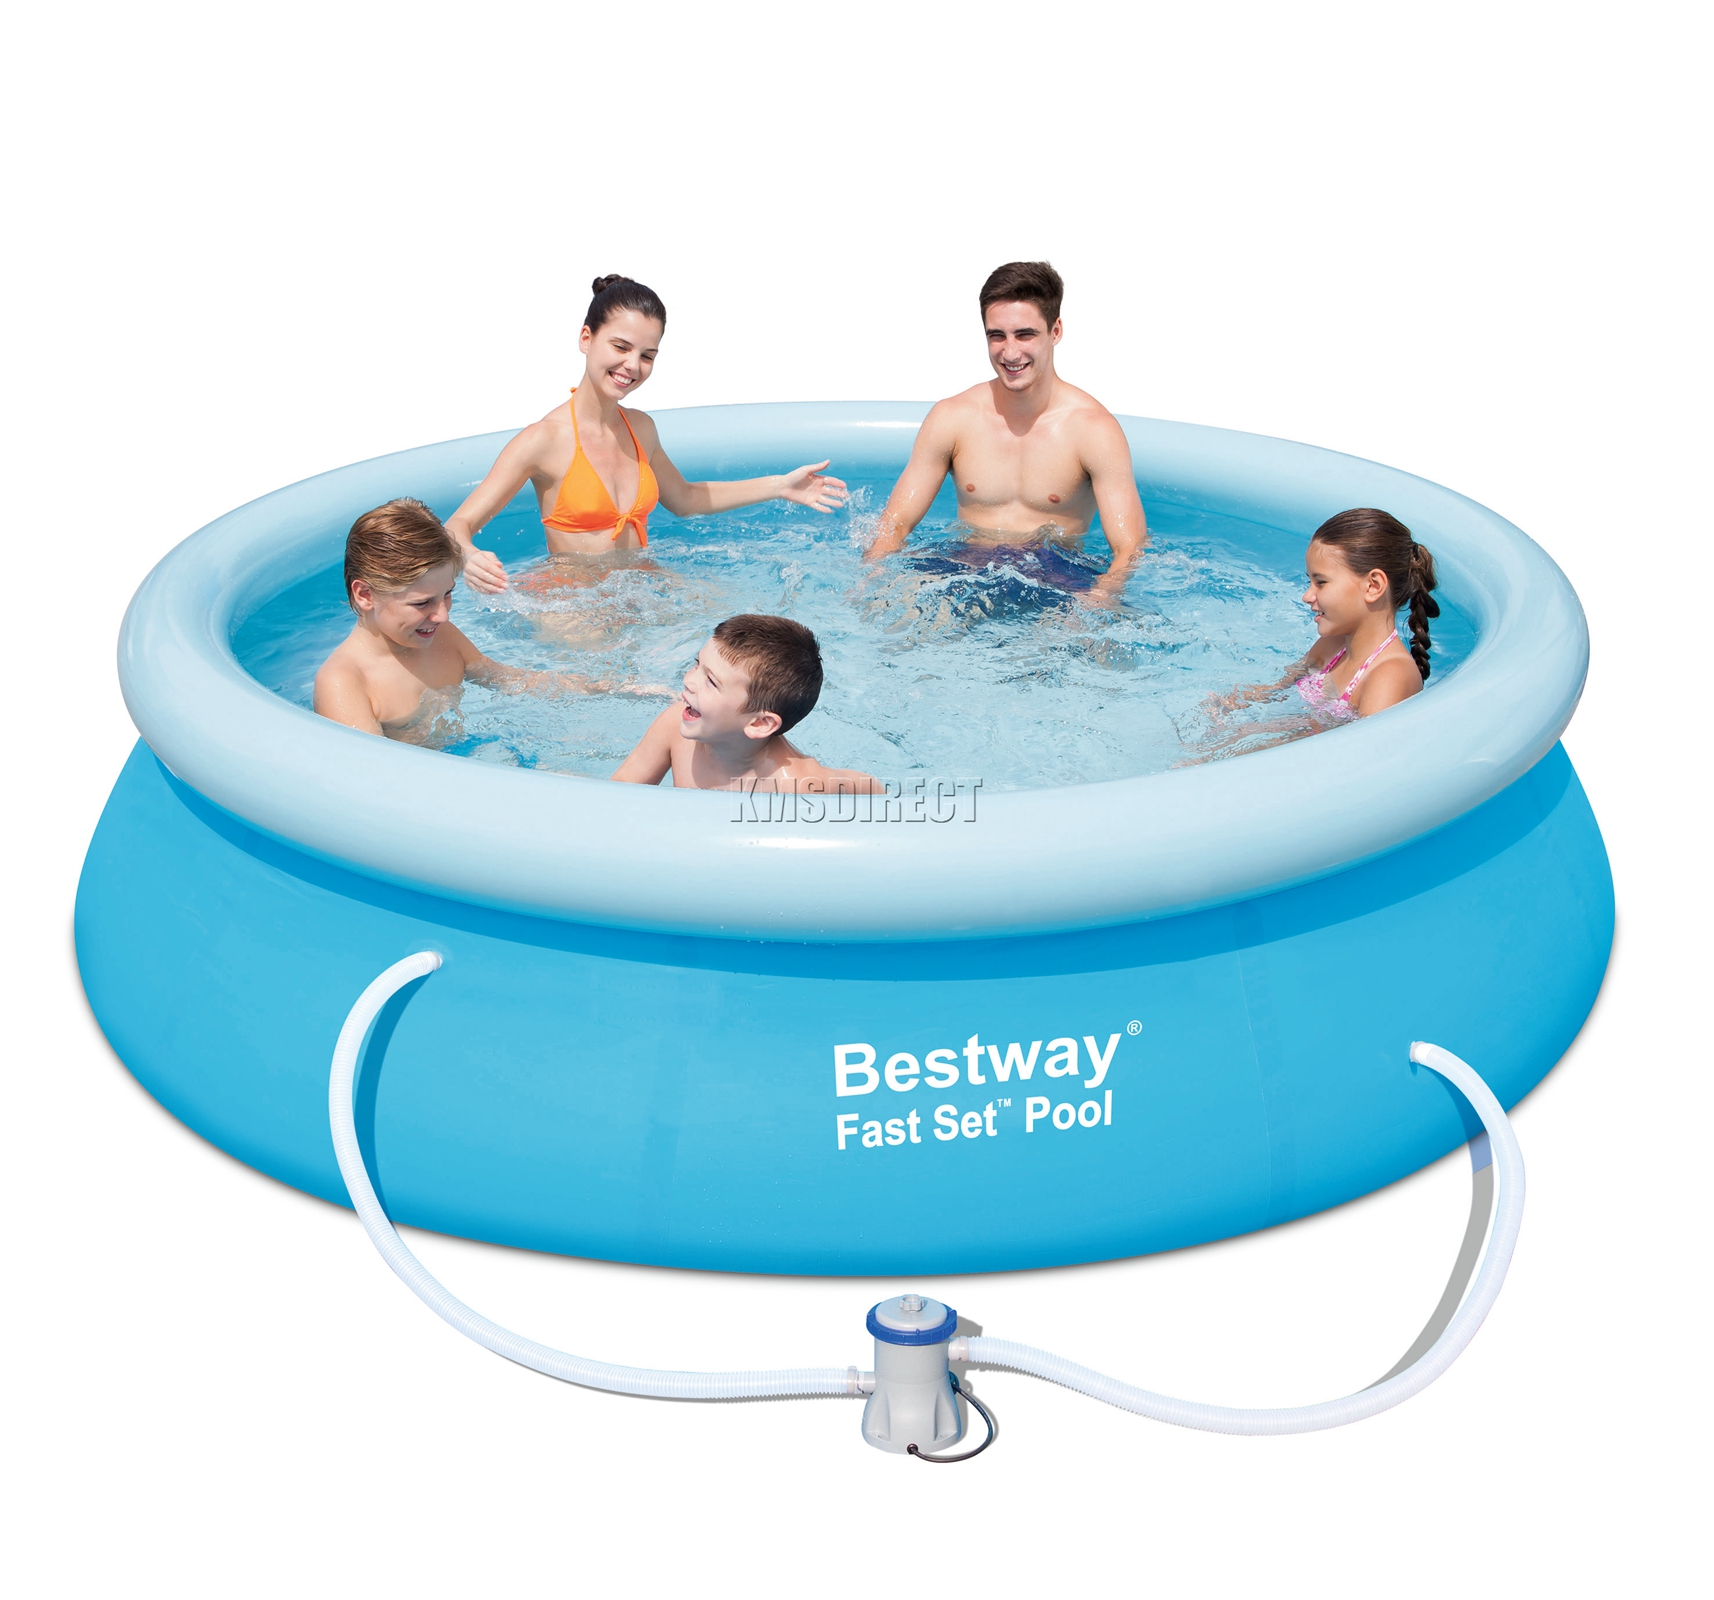 Bestway fast set swimming pool round inflatable 10ft x 30inch with filter pump ebay Inflatable quick set swimming pool